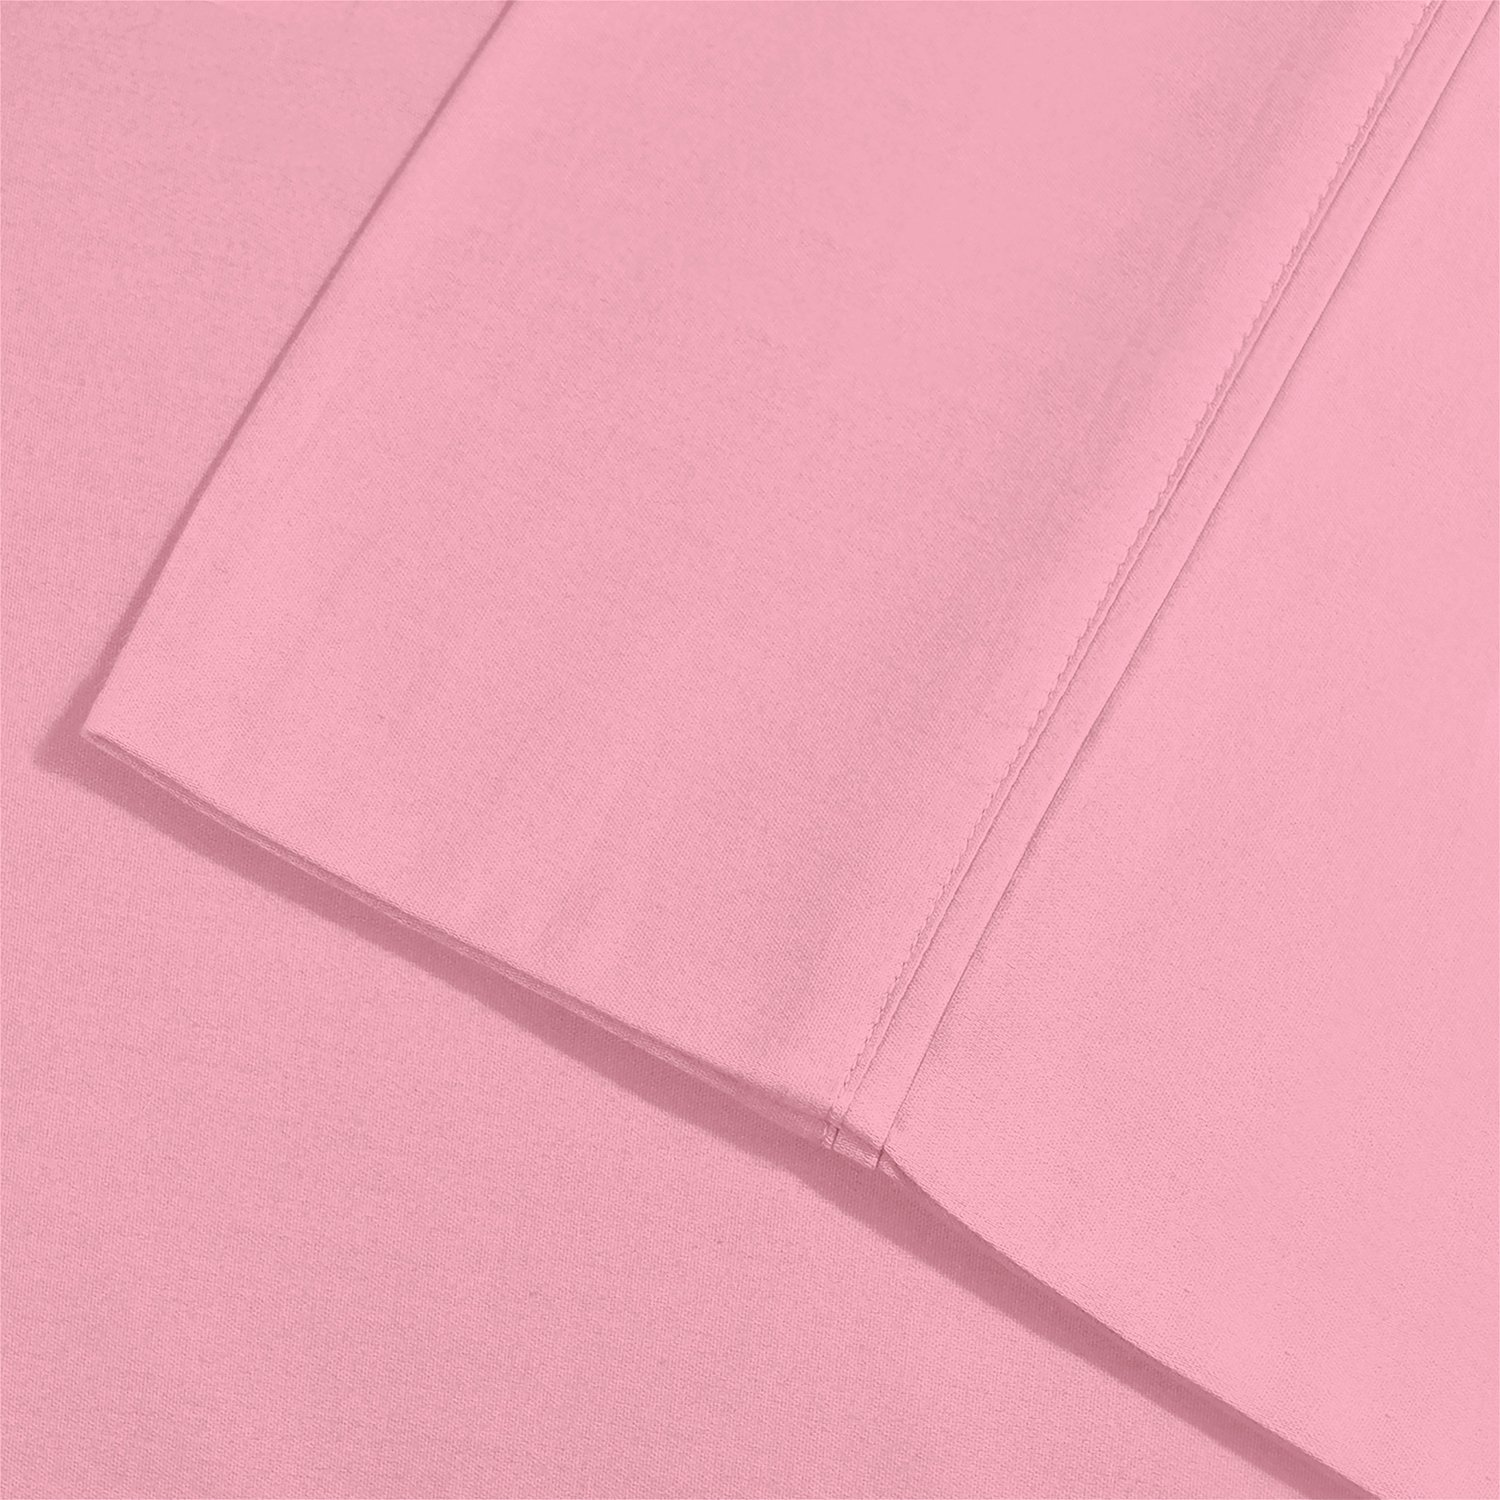 Blue Nile Mills 1500 Series Stnd Pillow Cases (Pair) Microfiber Solid, Pink durable modeling